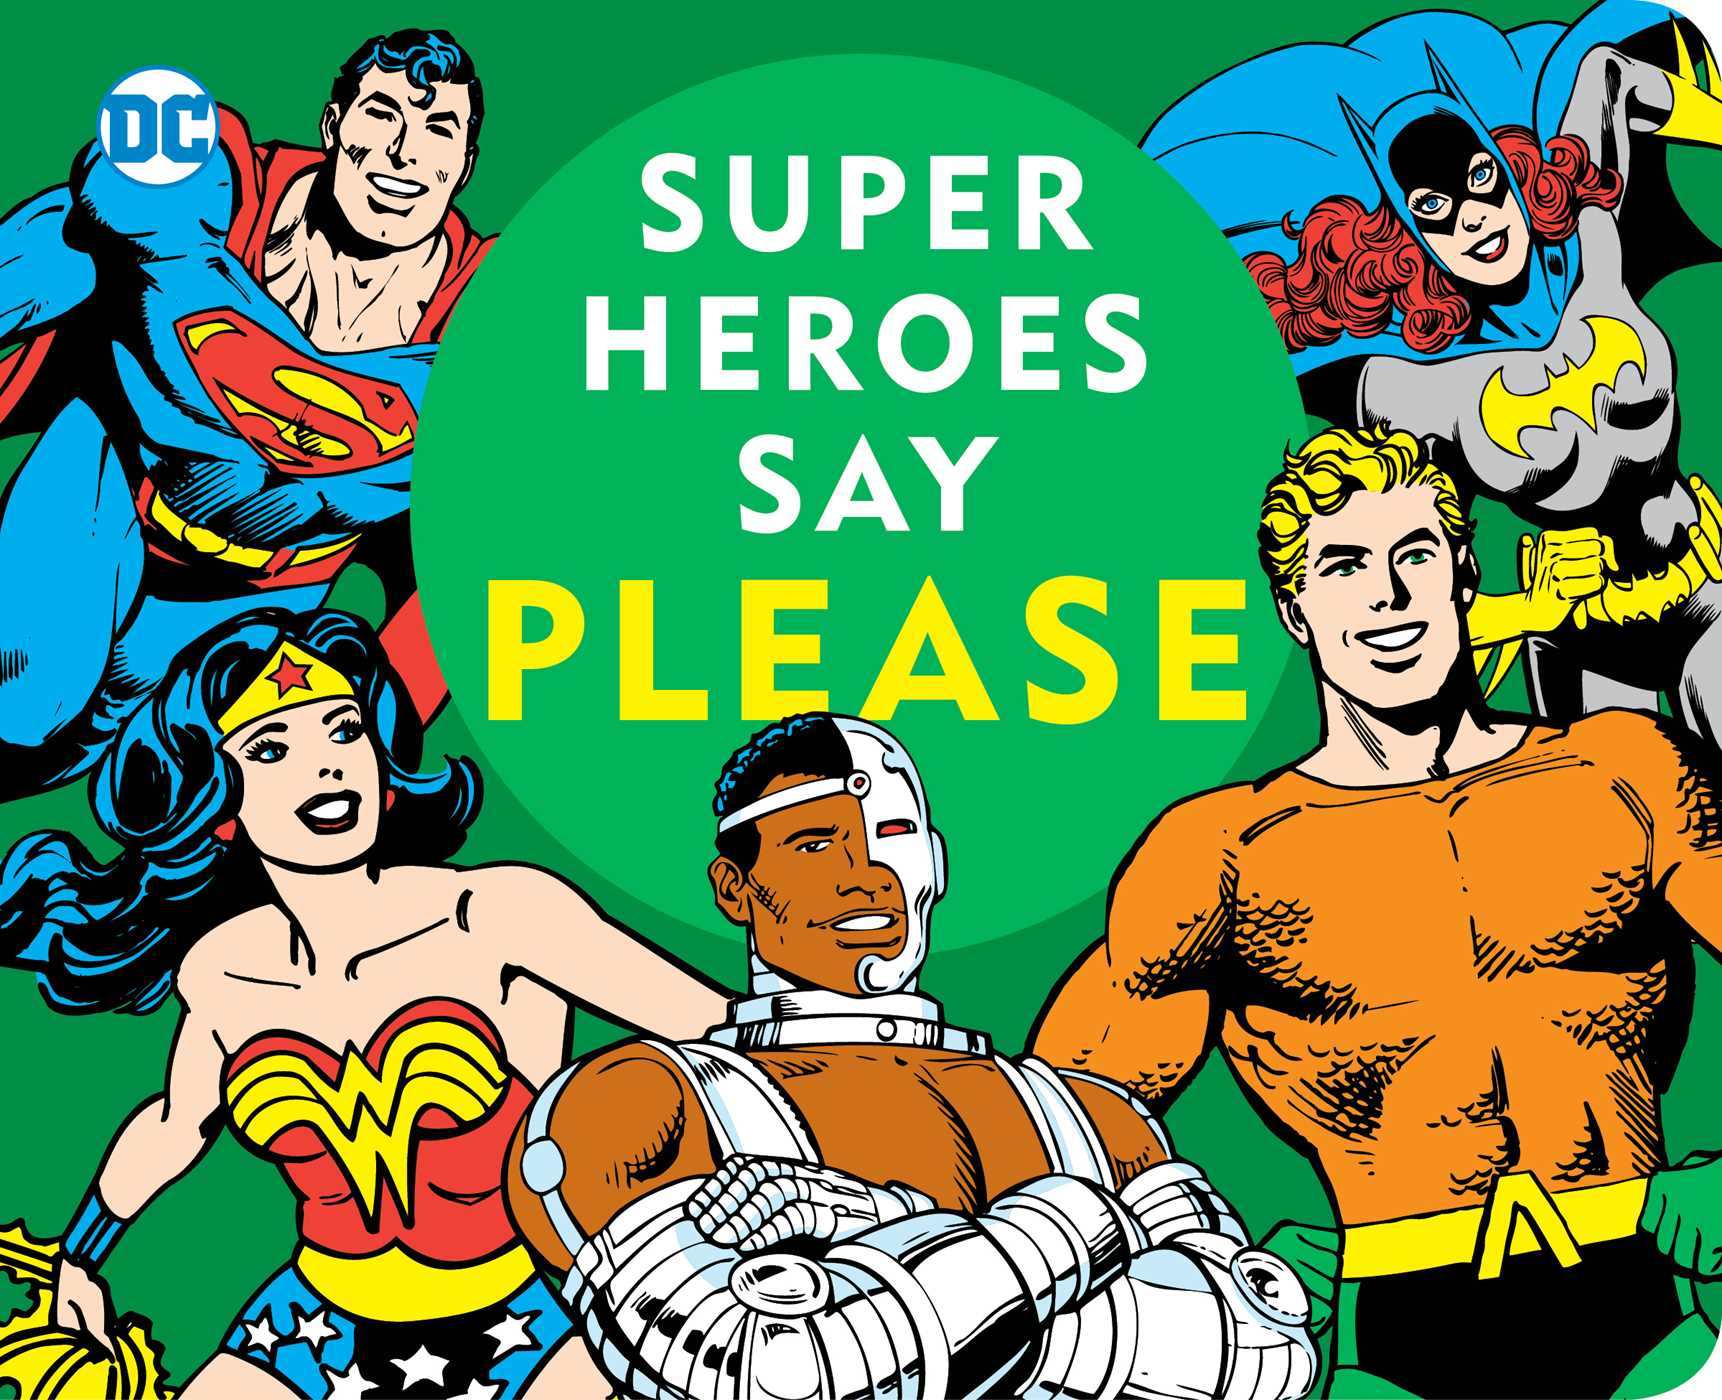 Super heroes say please 9781941367575 hr